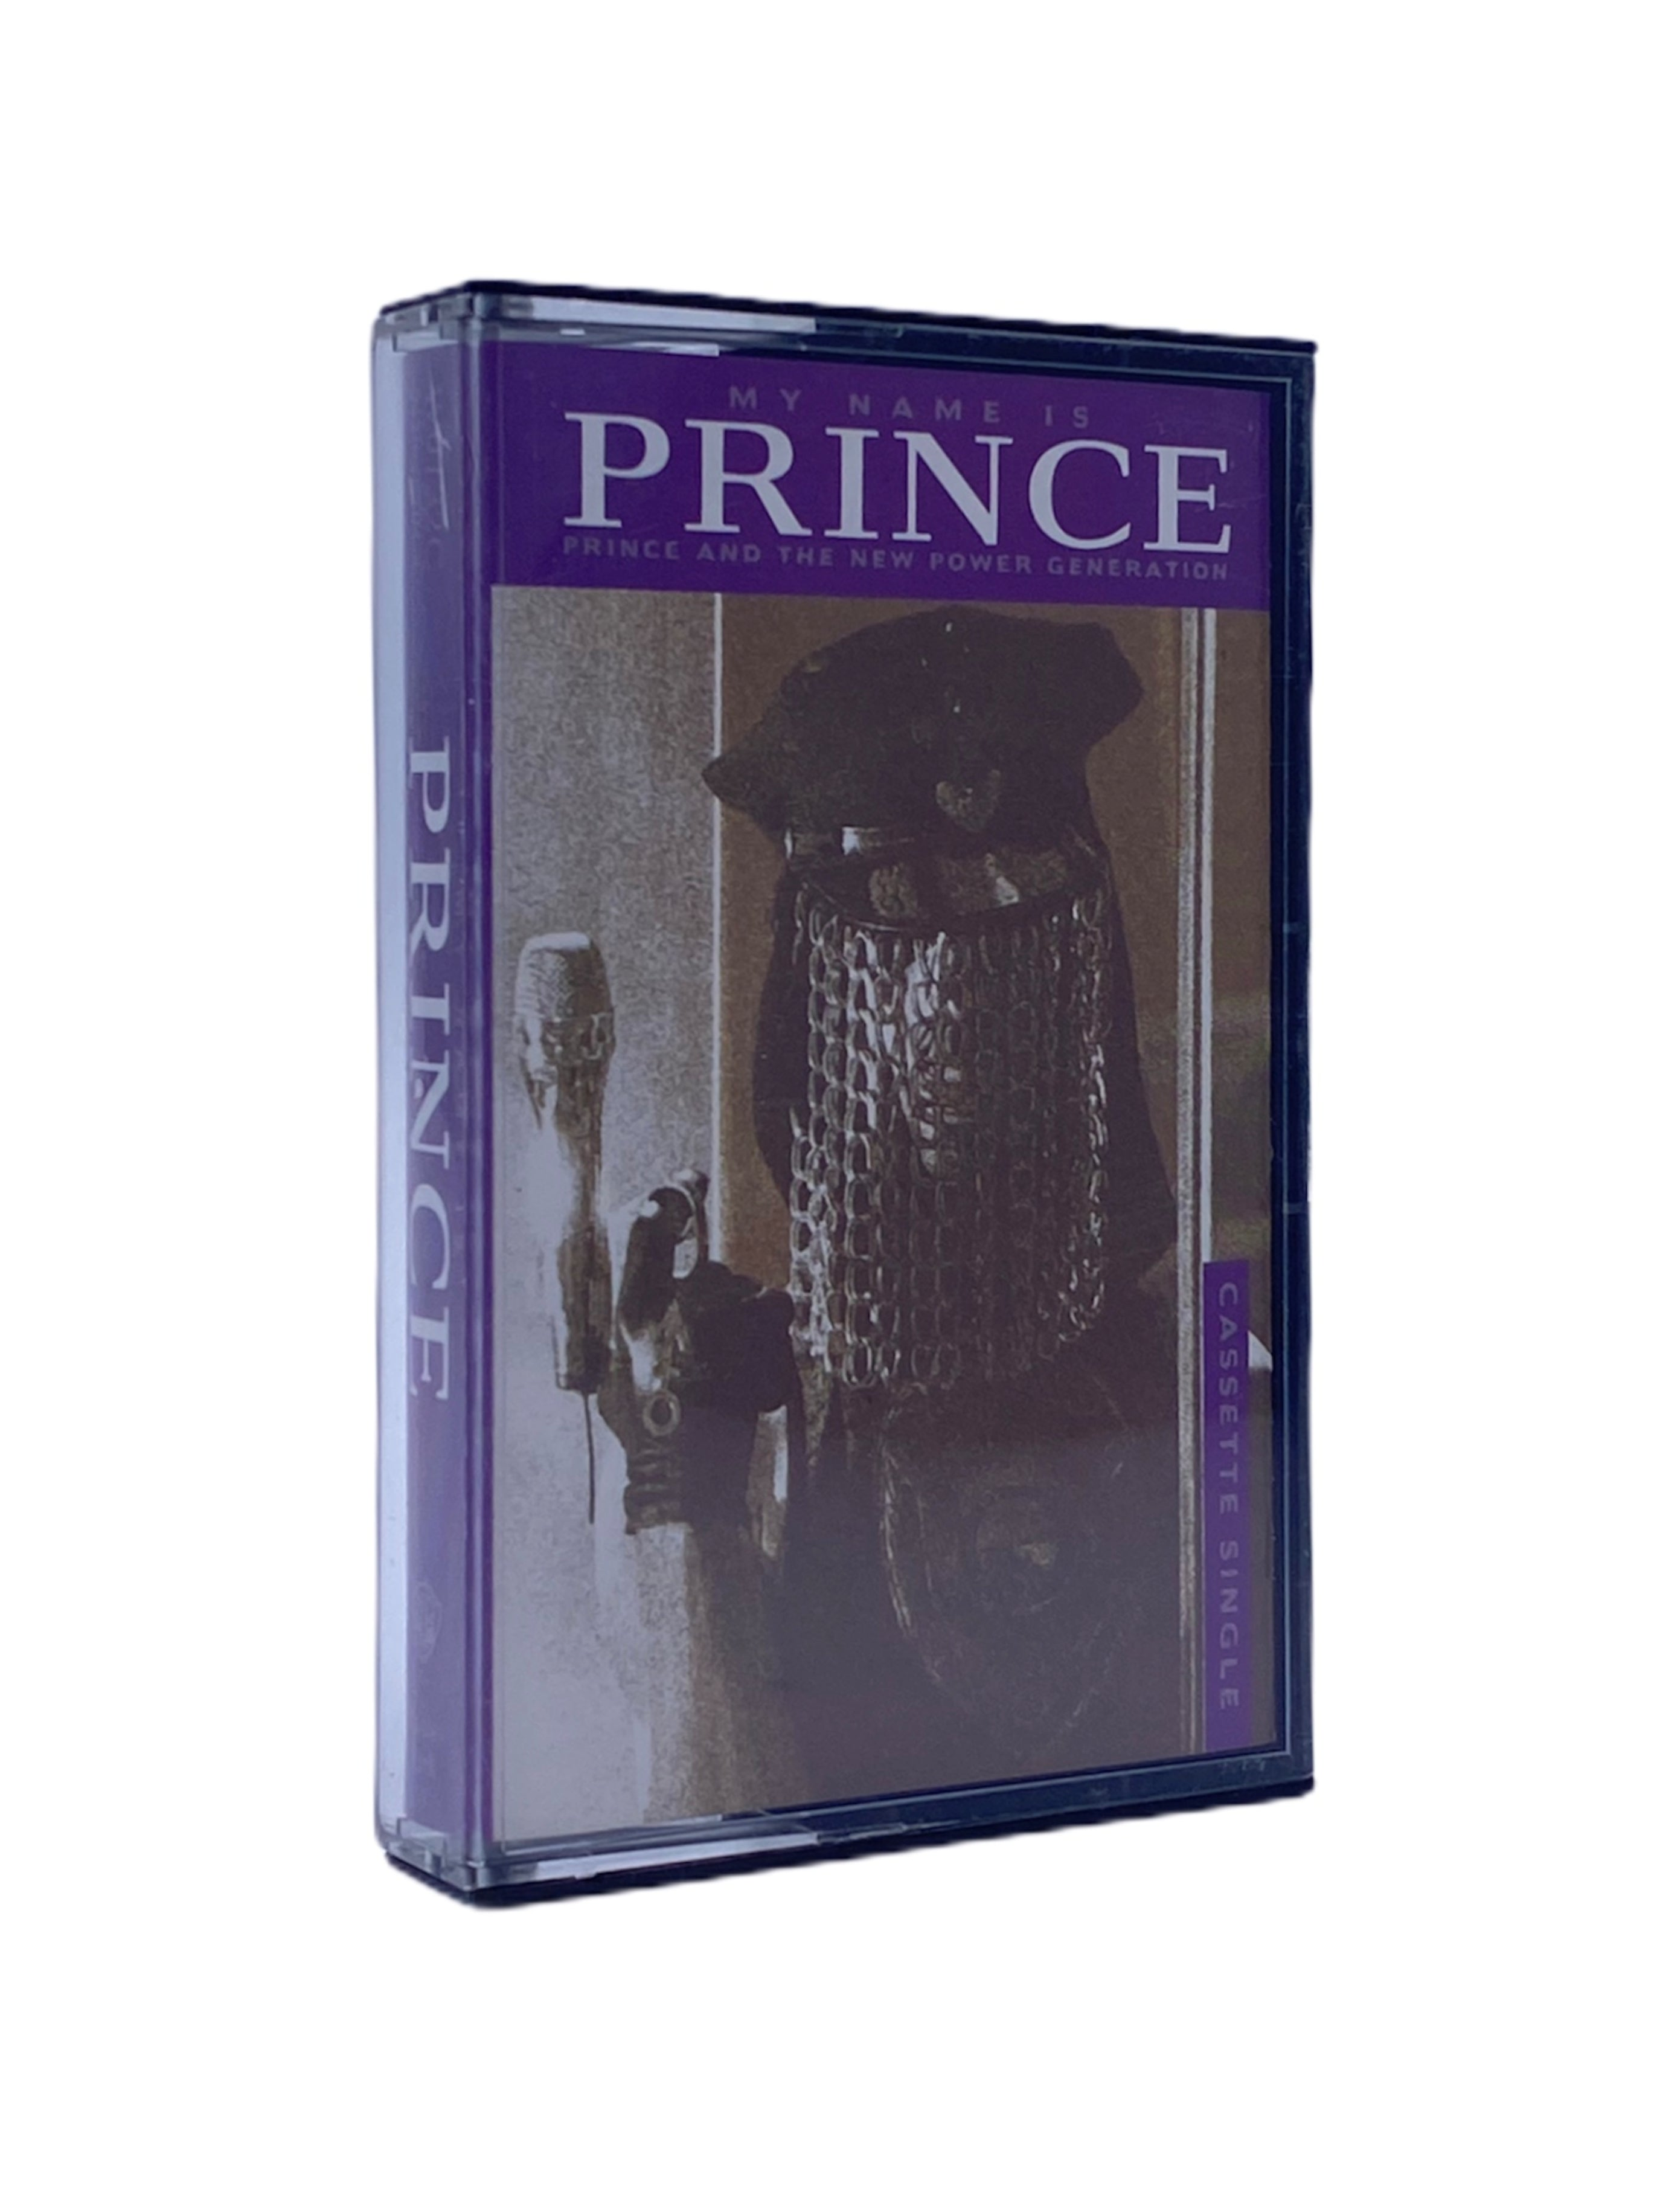 Prince My Name Is Prince 1992 Original Cassette Tape Single Cassingle IB